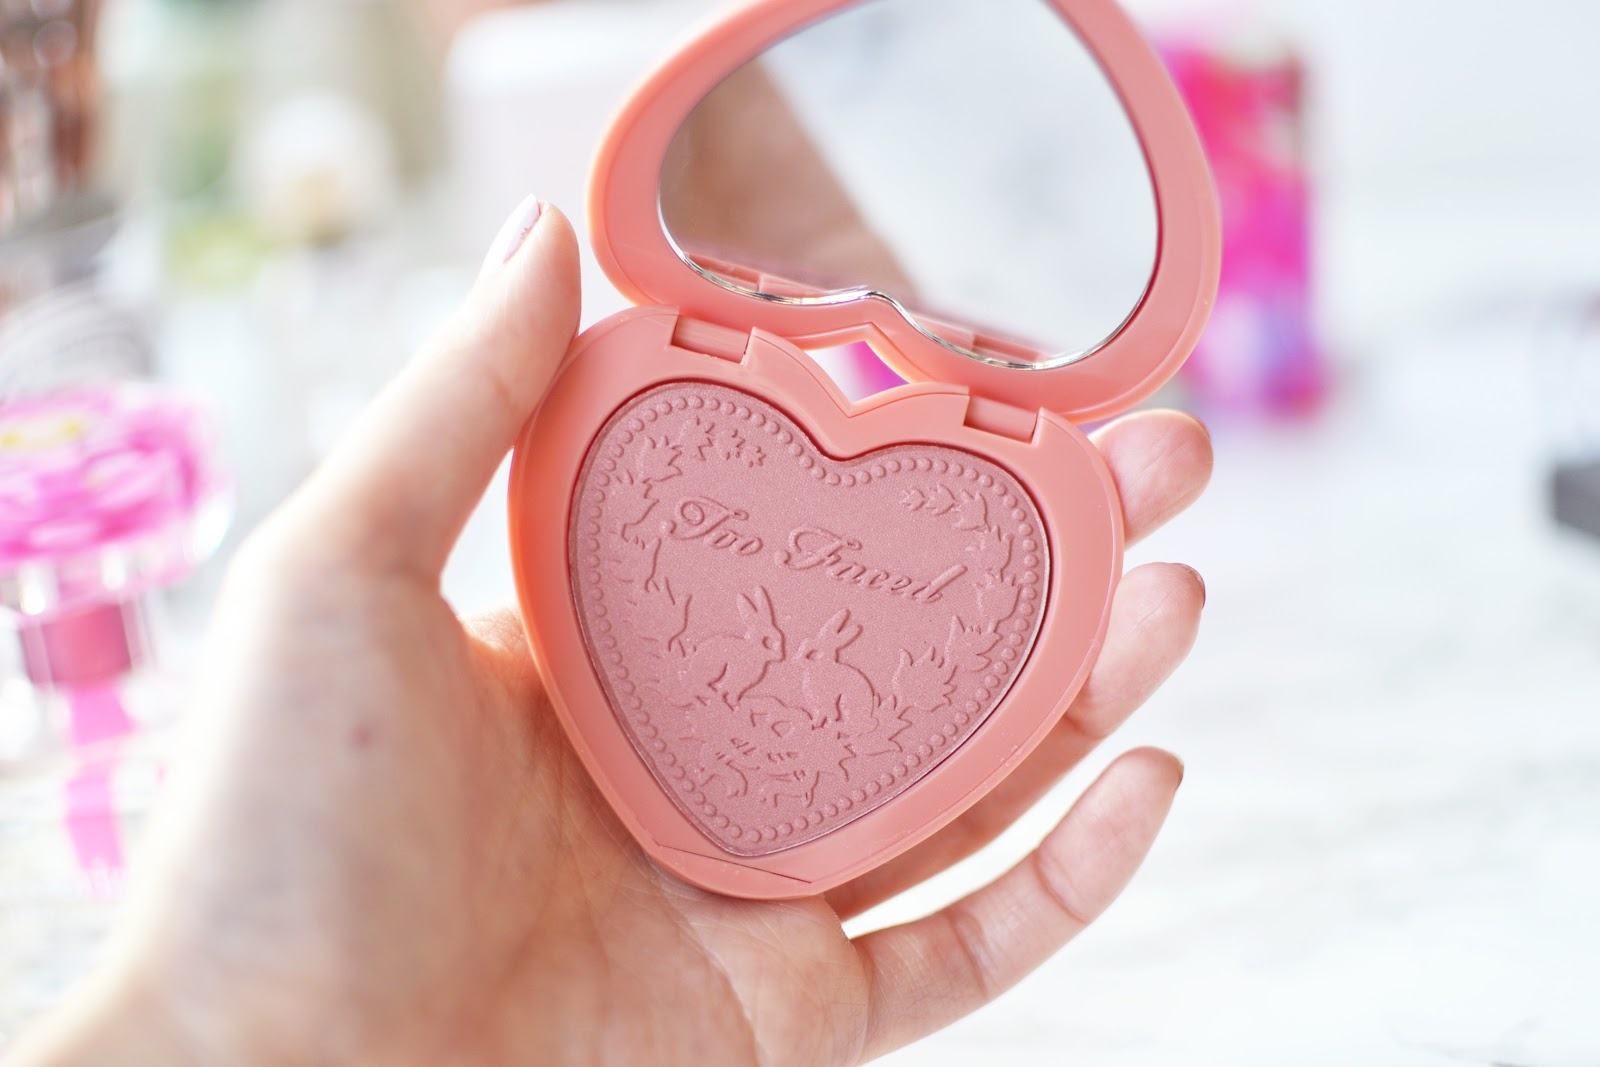 Too Faced Love Flush Long Lasting Blush in Baby Love